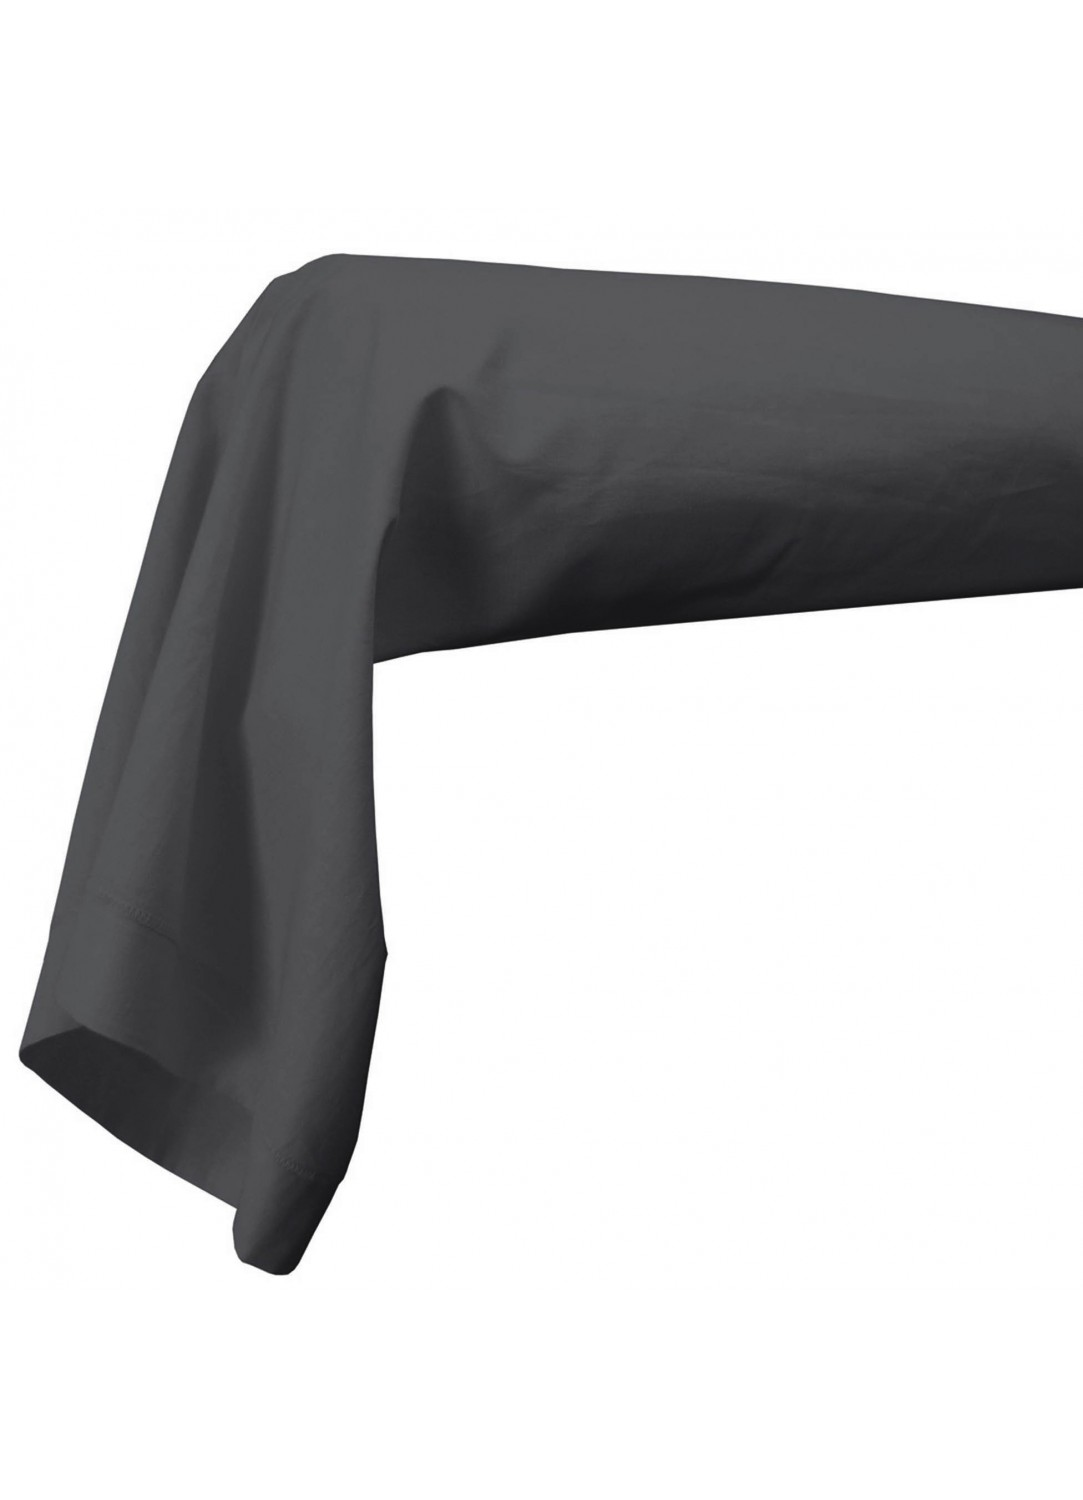 Housse de traversin percale 86 x 190 cm unie (Anthracite)